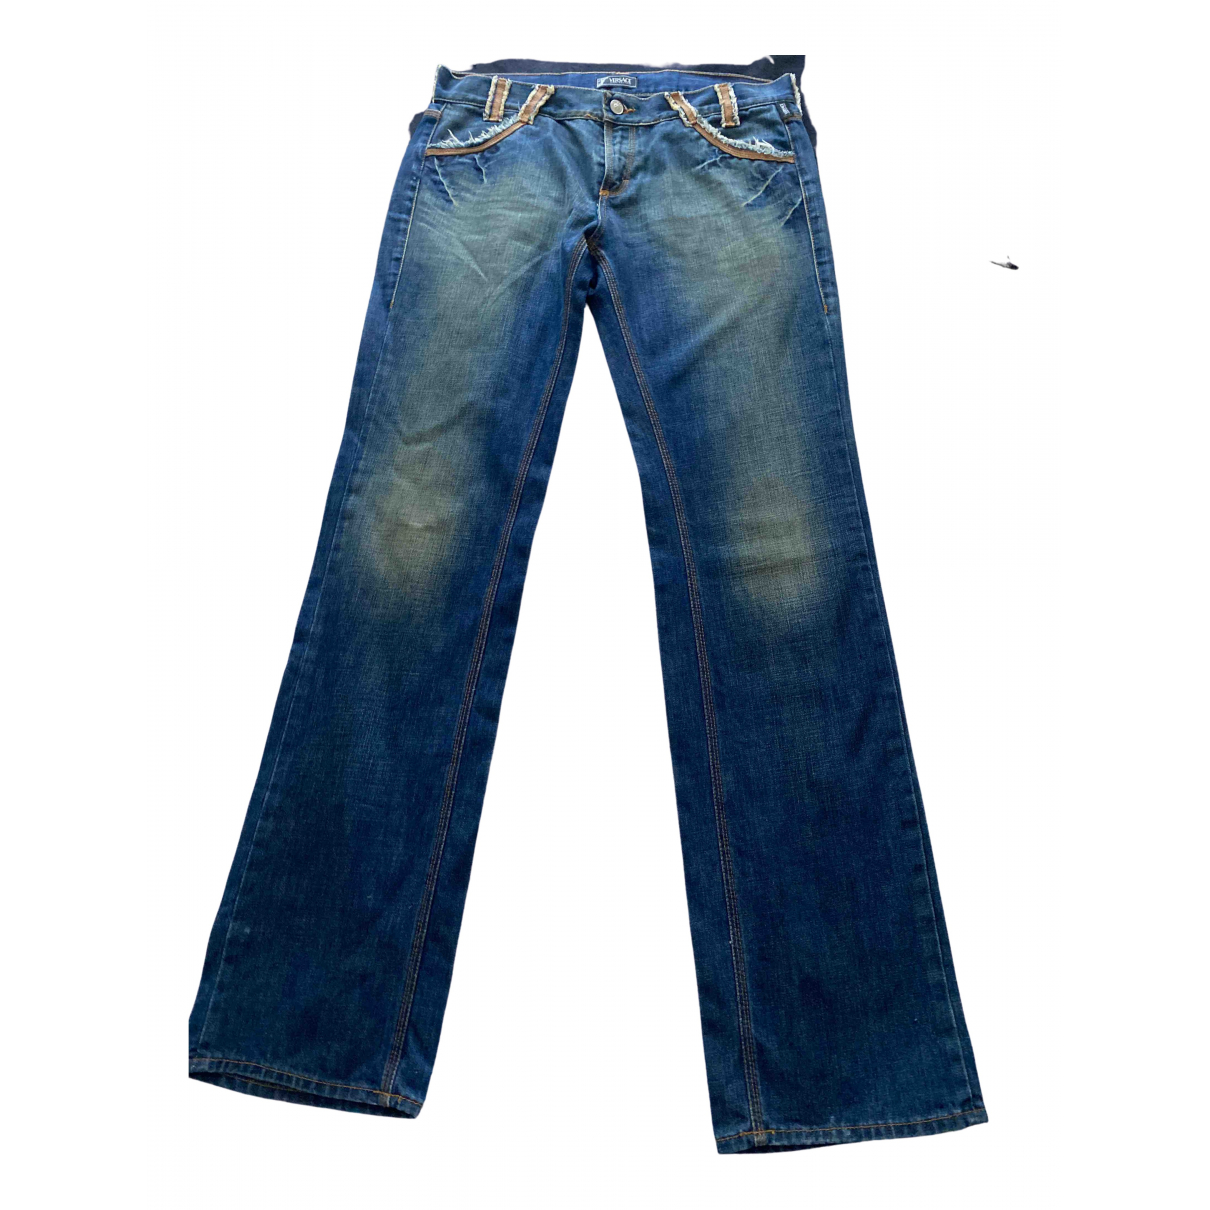 Versace Jeans \N Blue Denim - Jeans Trousers for Women L International